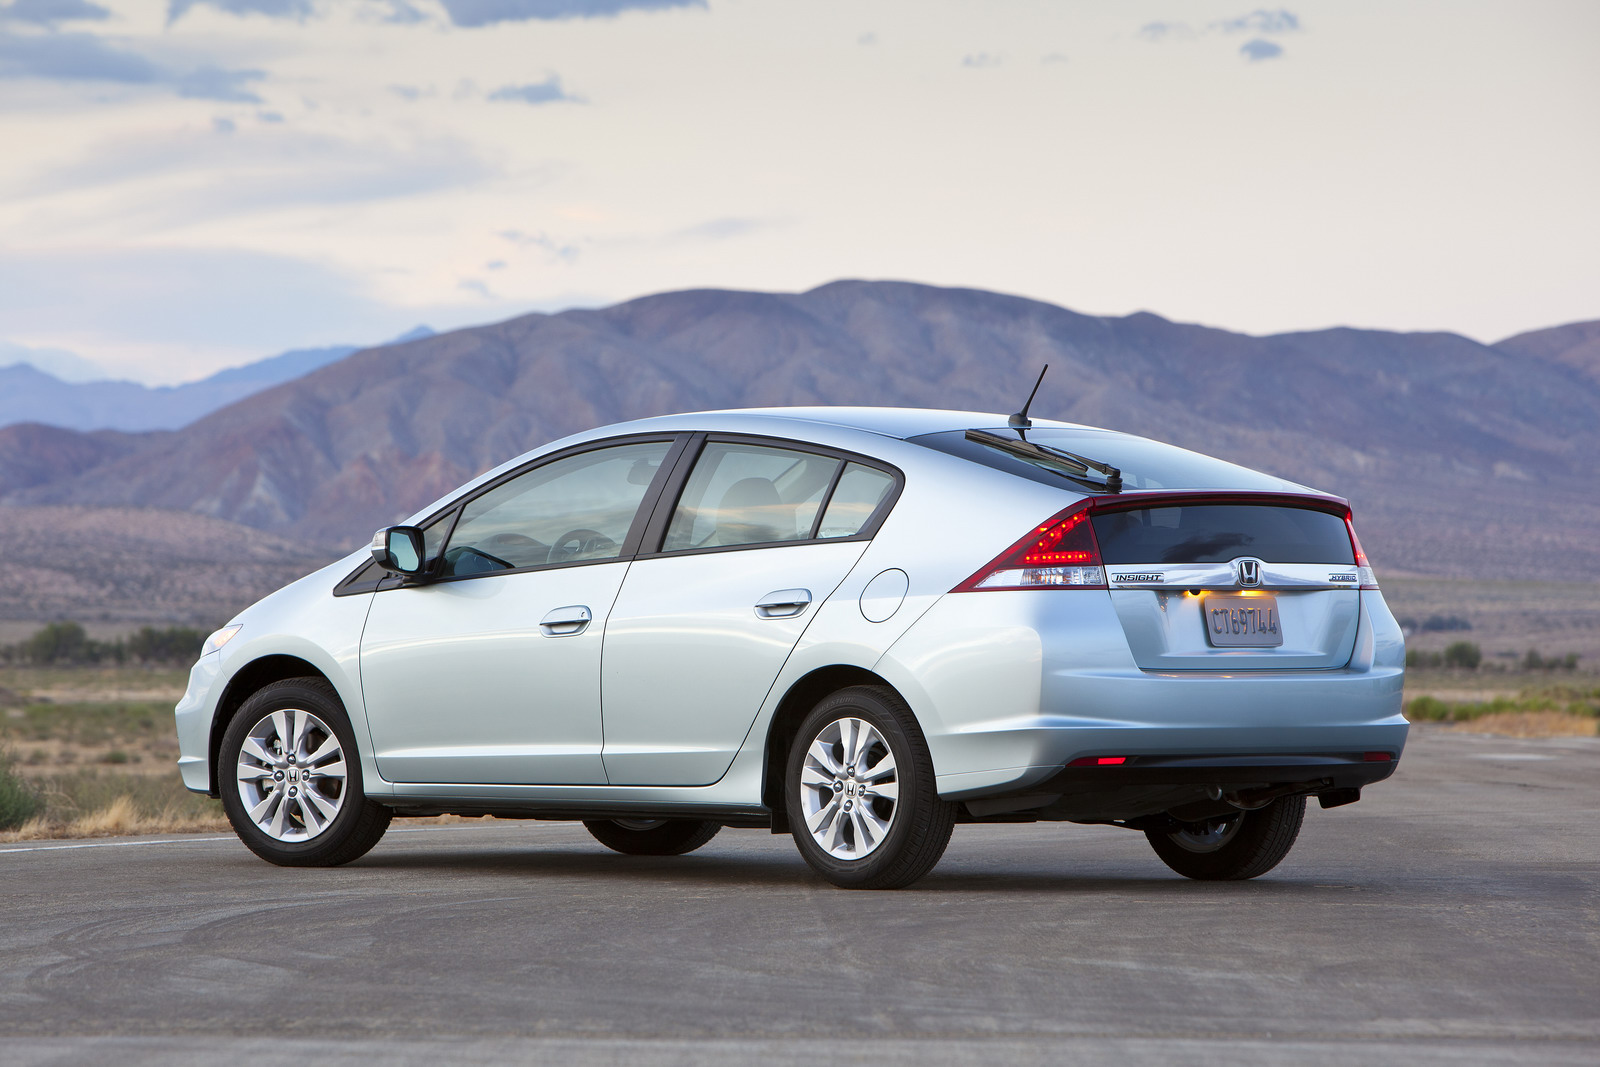 Buy rating for honda motor by ubs from 03/31/20 © 2021 insider inc. 2012 Honda Insight Hybrid Introduced in the US - autoevolution